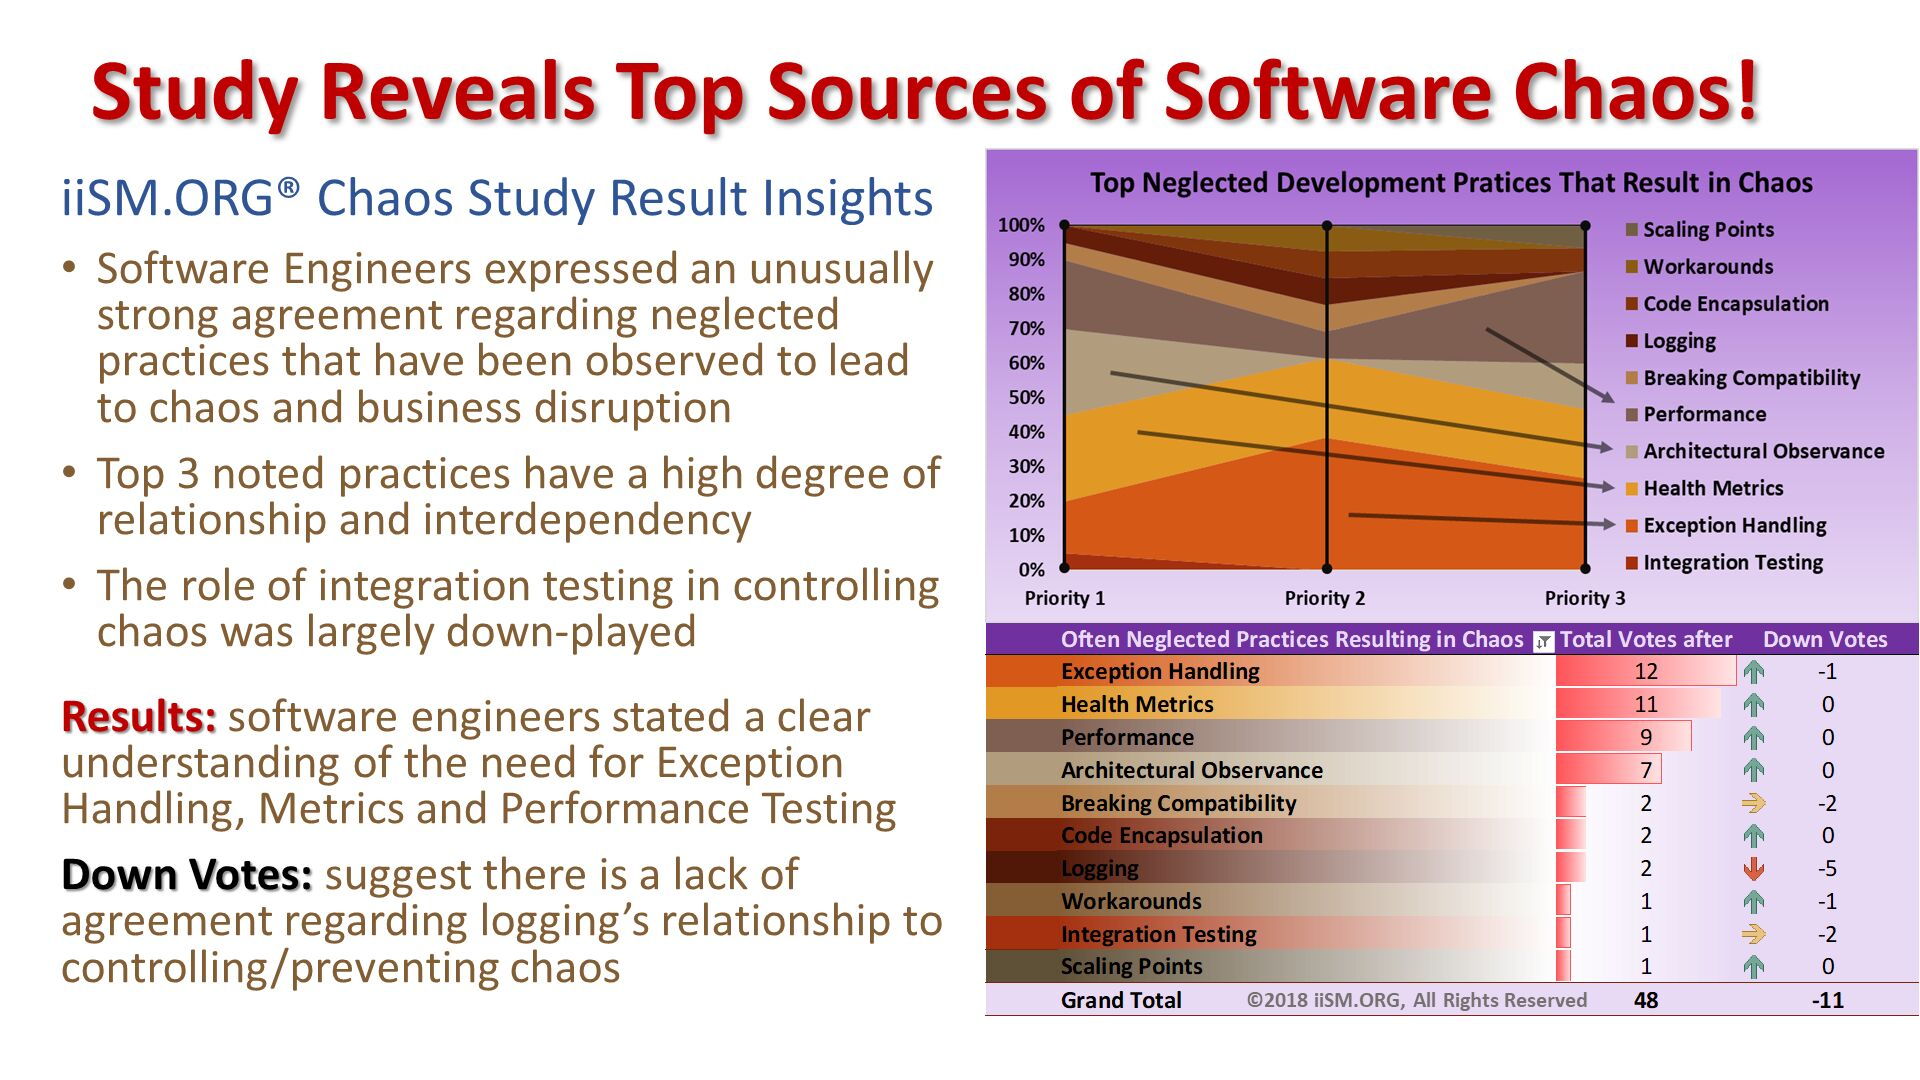 iiSM.ORG® Chaos Study Result Insights Software Engineers expressed an unusually strong agreement regarding neglected practices that have been observed to lead to chaos and business disruption Top 3 noted practices have a high degree of relationship and interdependency  The role of integration testing in controlling chaos was largely down-played Results: software engineers stated a clear understanding of the need for Exception Handling, Metrics and Performance Testing Down Votes: suggest there is a lack of agreement regarding logging's relationship to controlling/preventing chaos. Study Reveals Top Sources of Software Chaos!.